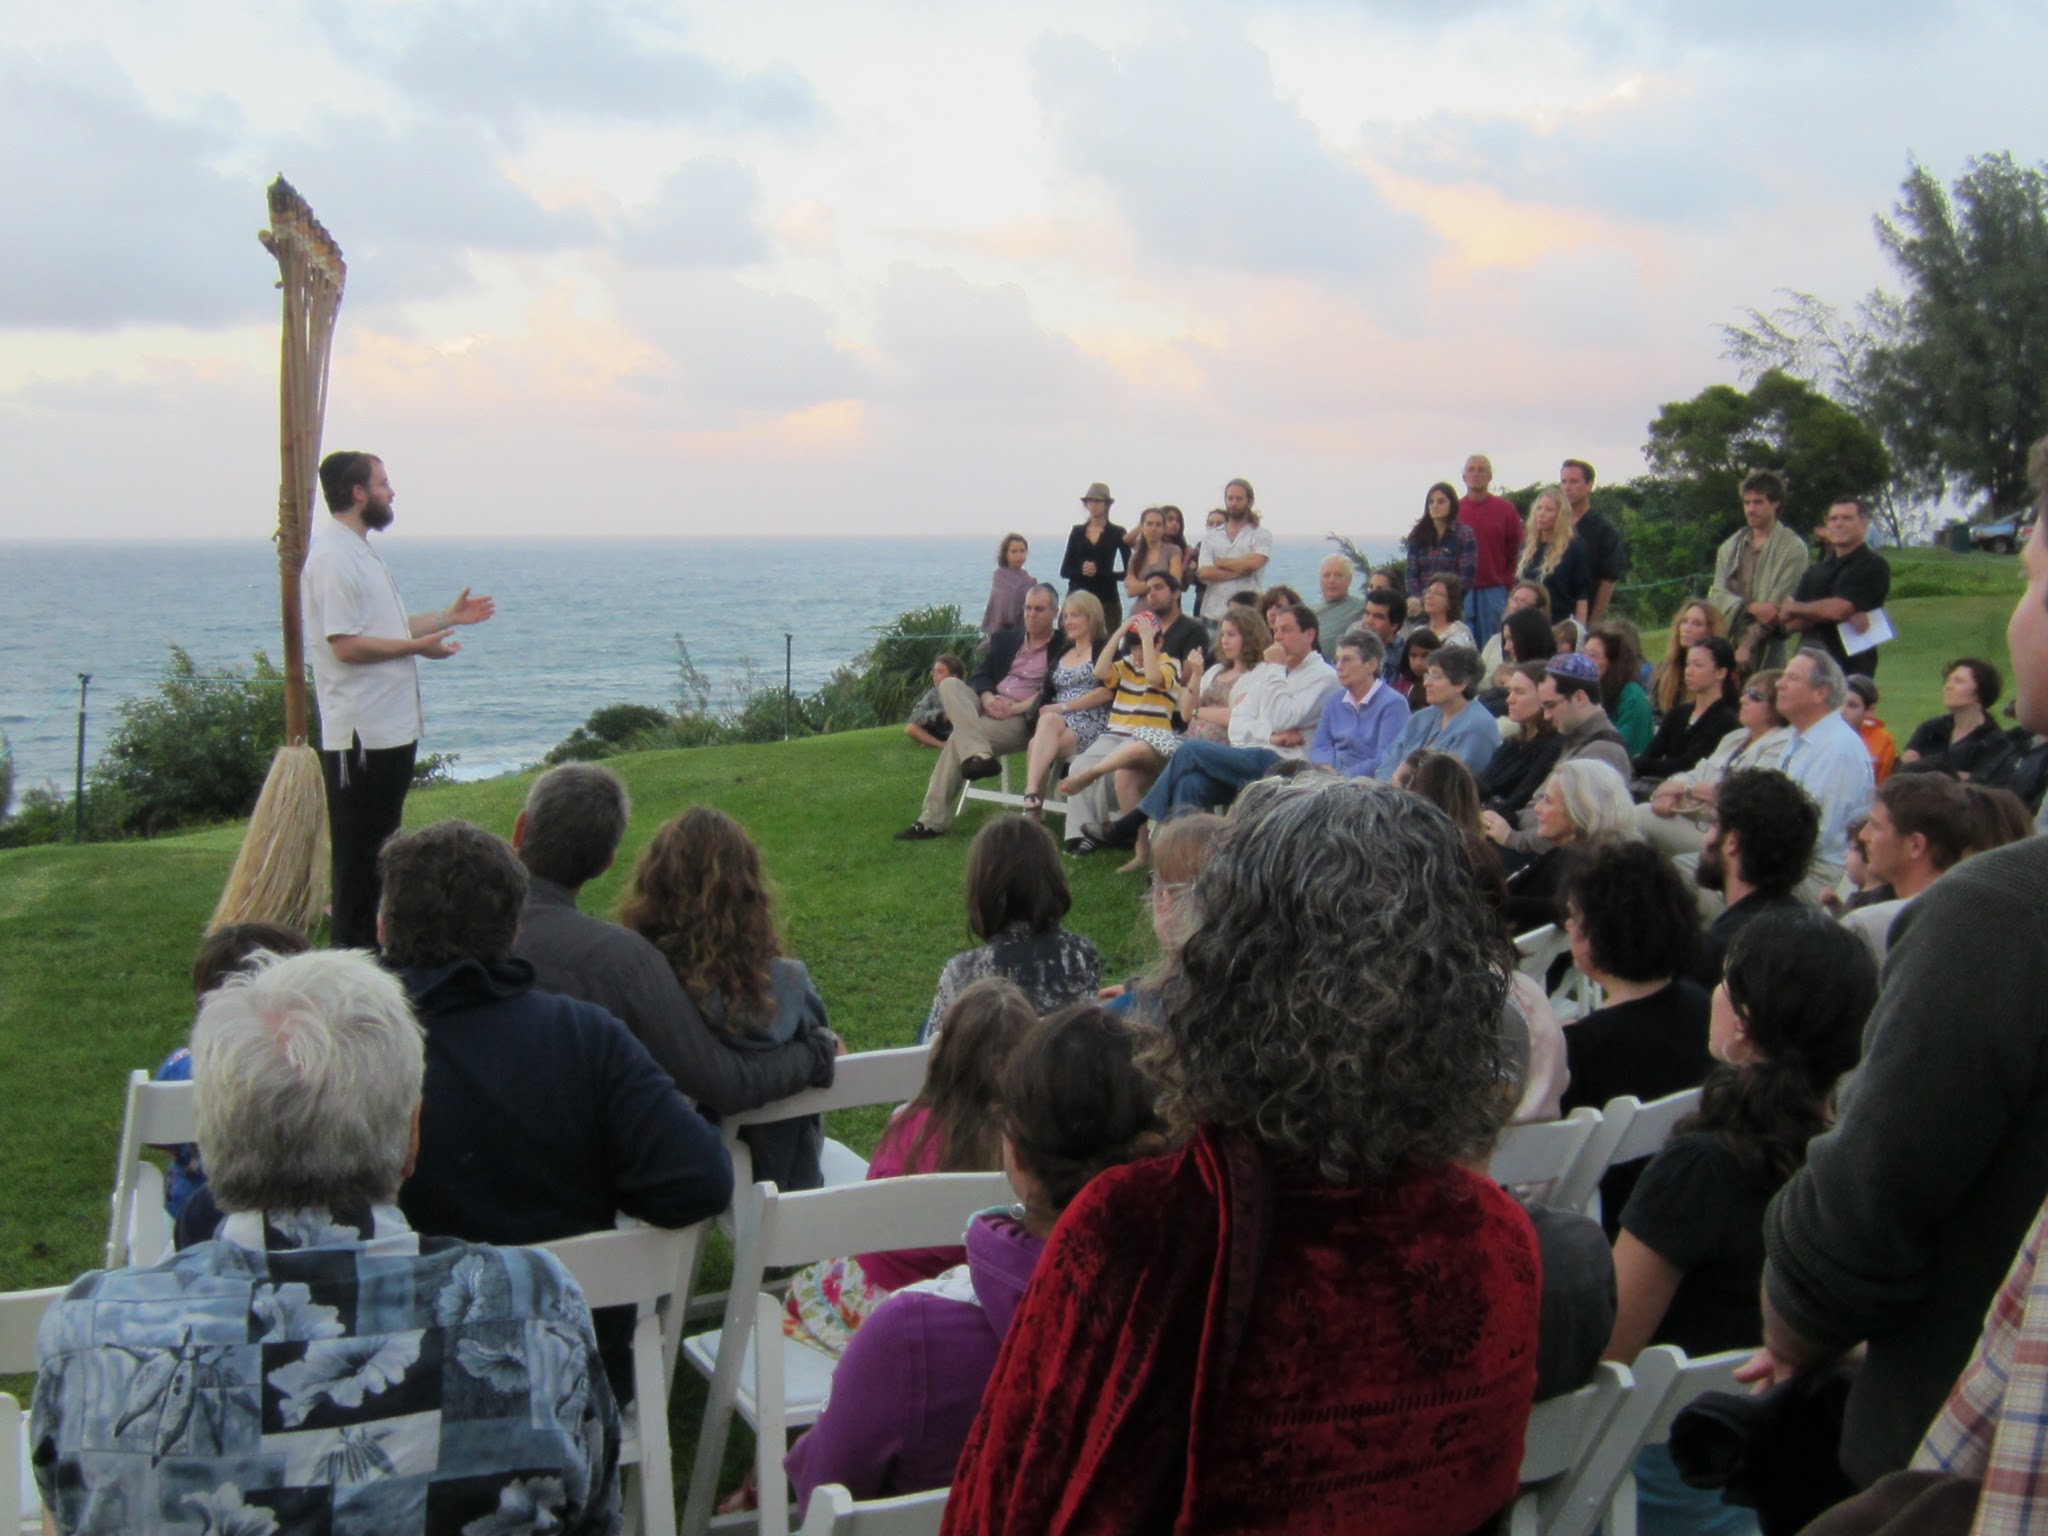 Photo: Local Kauai Jewry & visitors gather